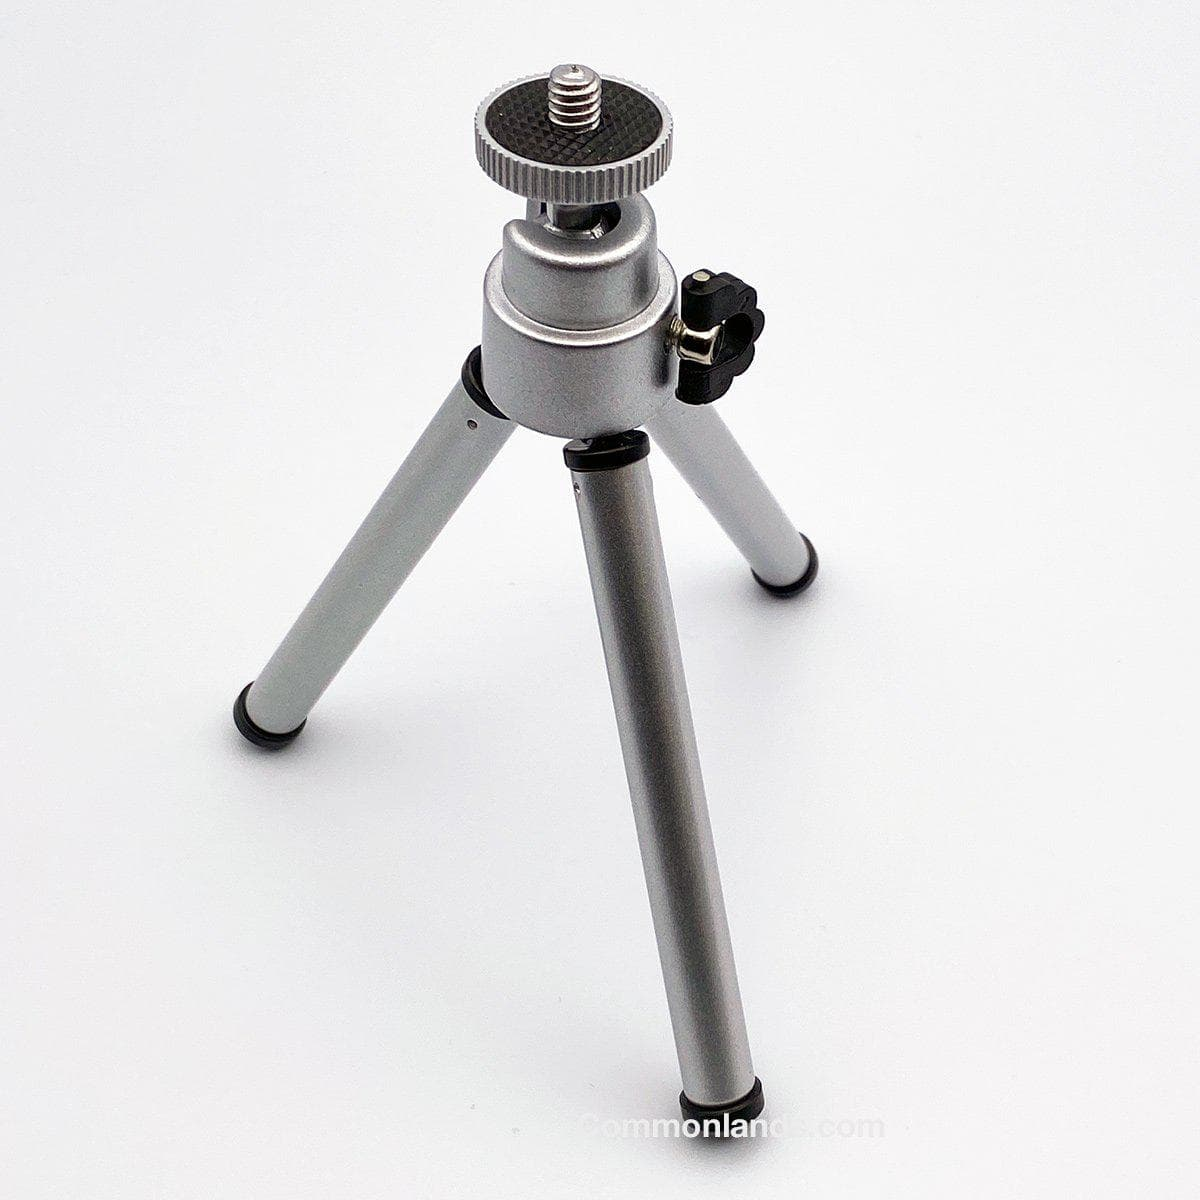 Telescoping Desktop Tripod for Webcams.